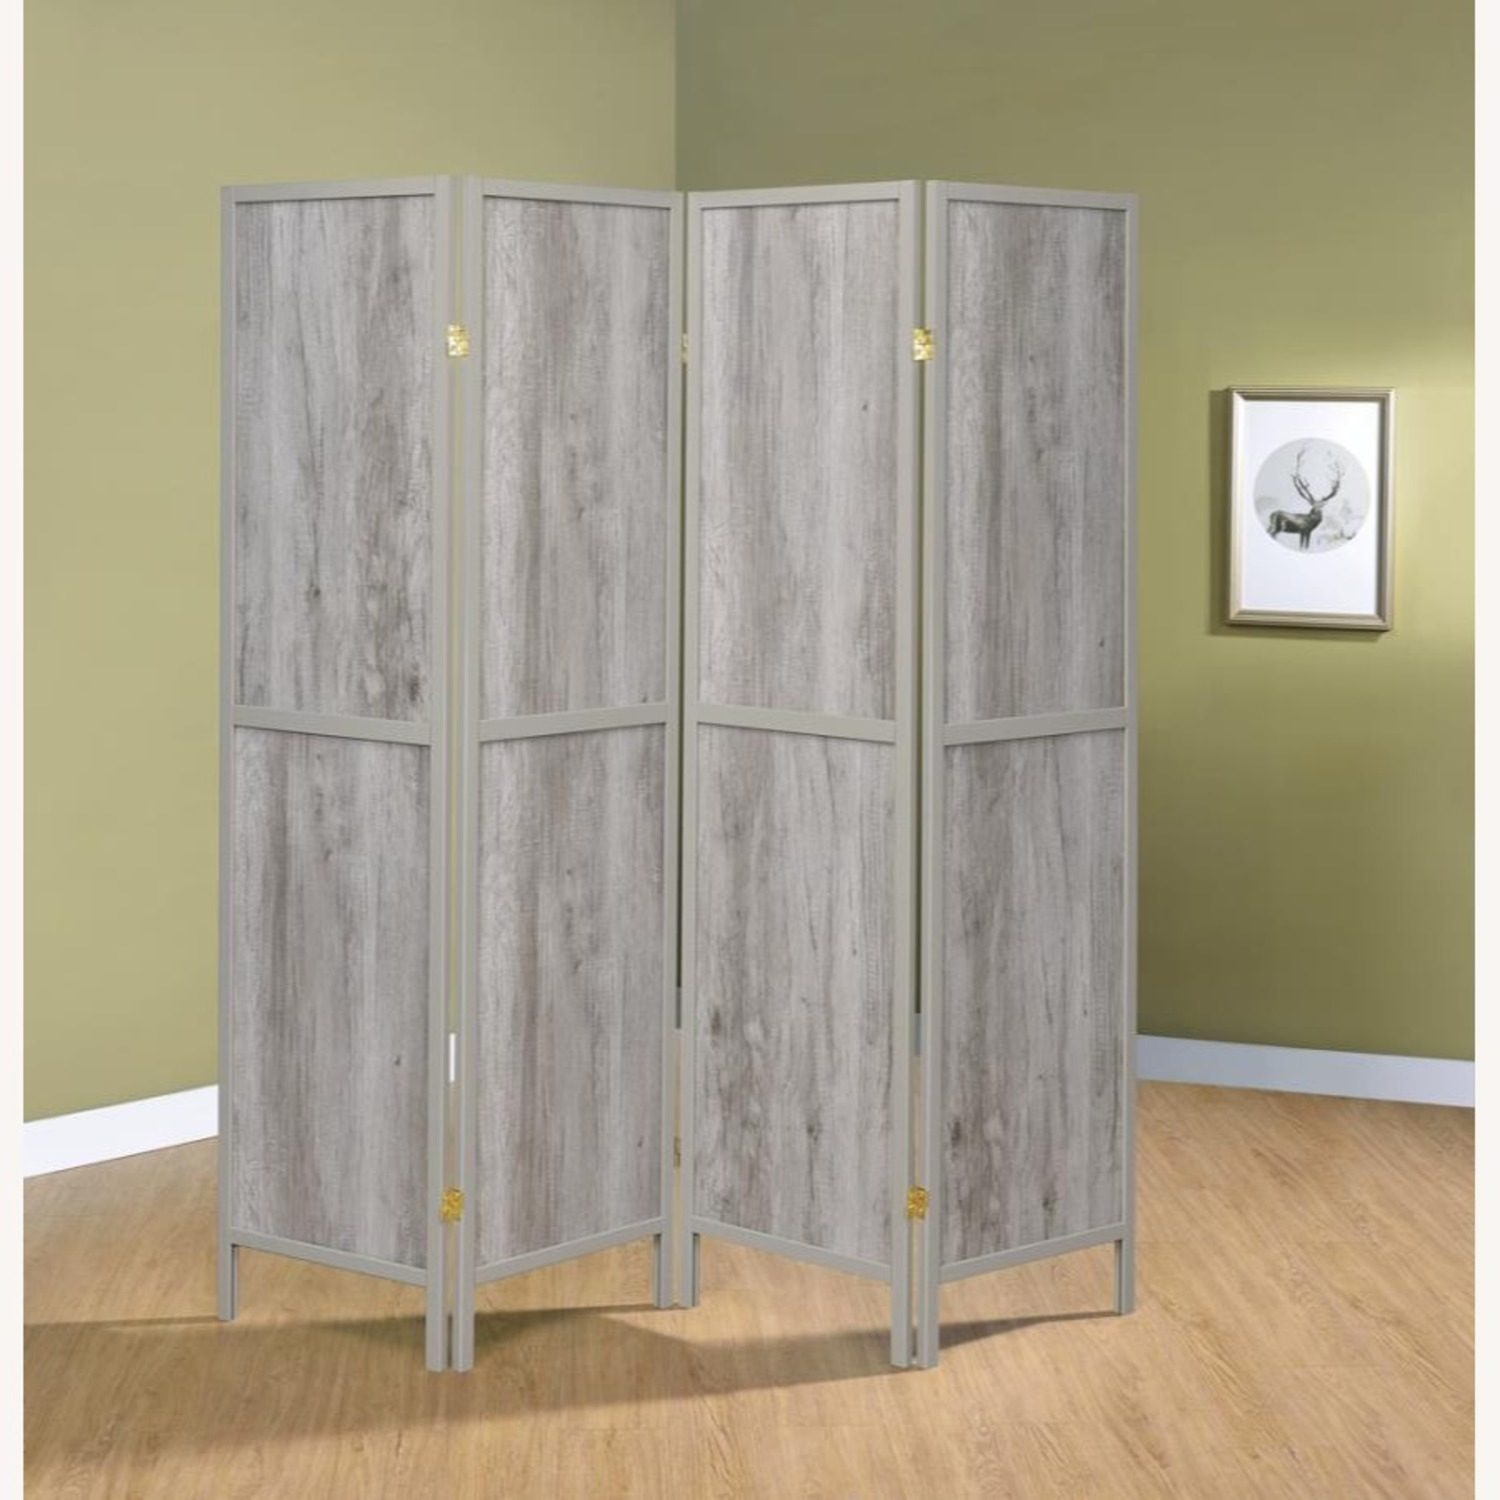 4-Panel Screen In Grey Driftwood & Grey Wood Frame - image-4